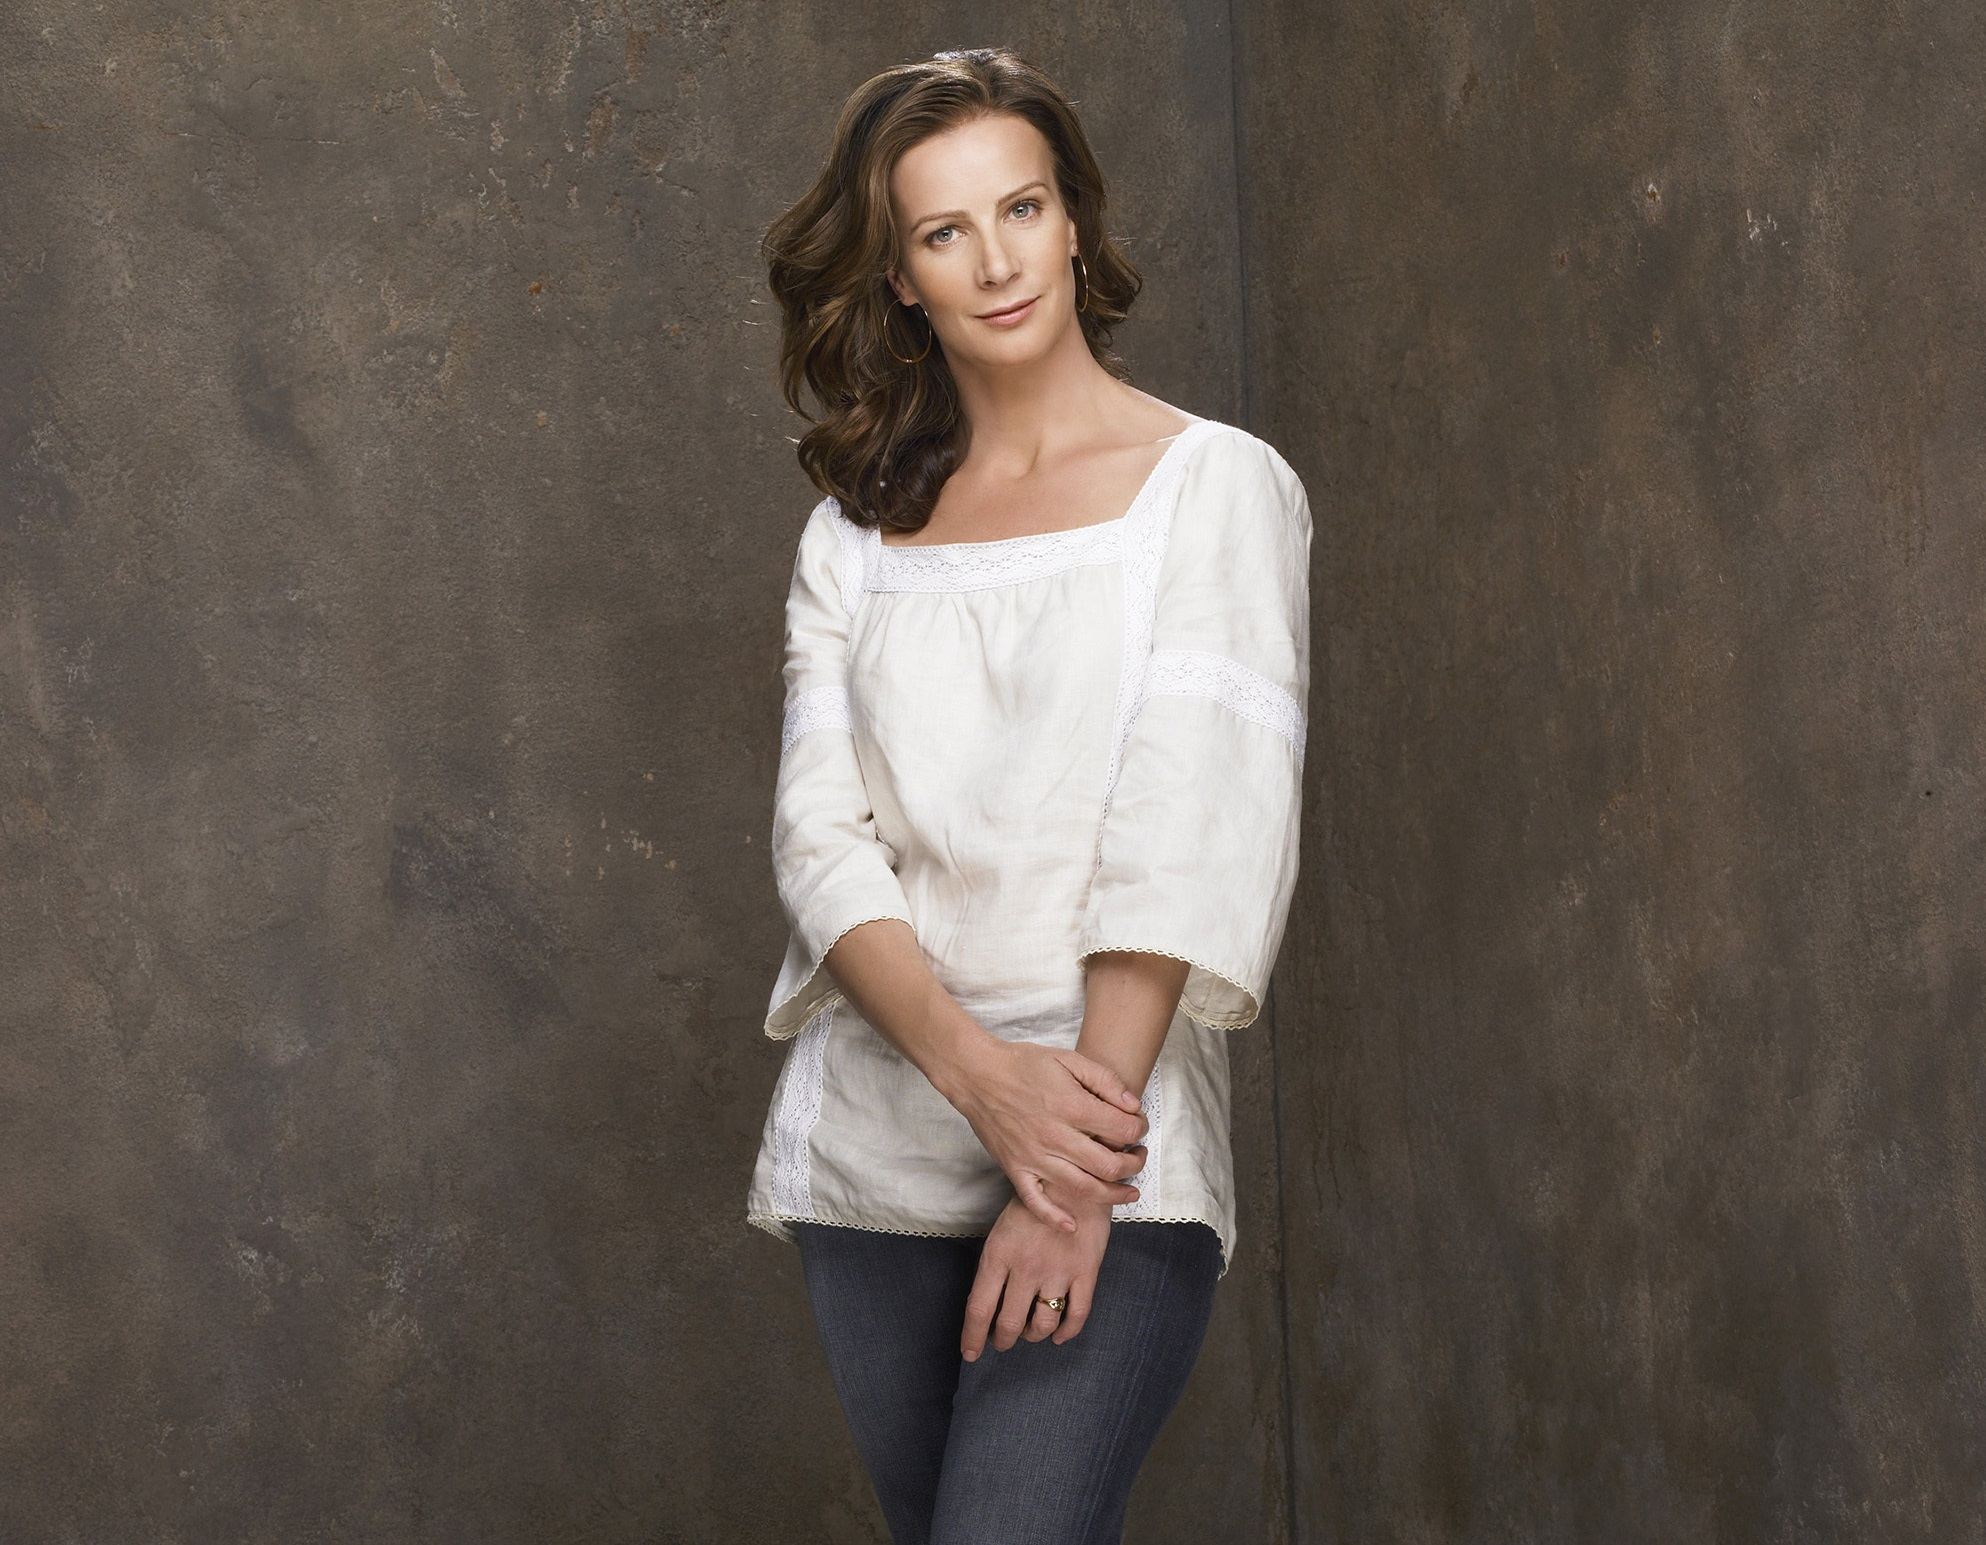 Rachel Griffiths Wallpapers Images Photos Pictures Backgrounds